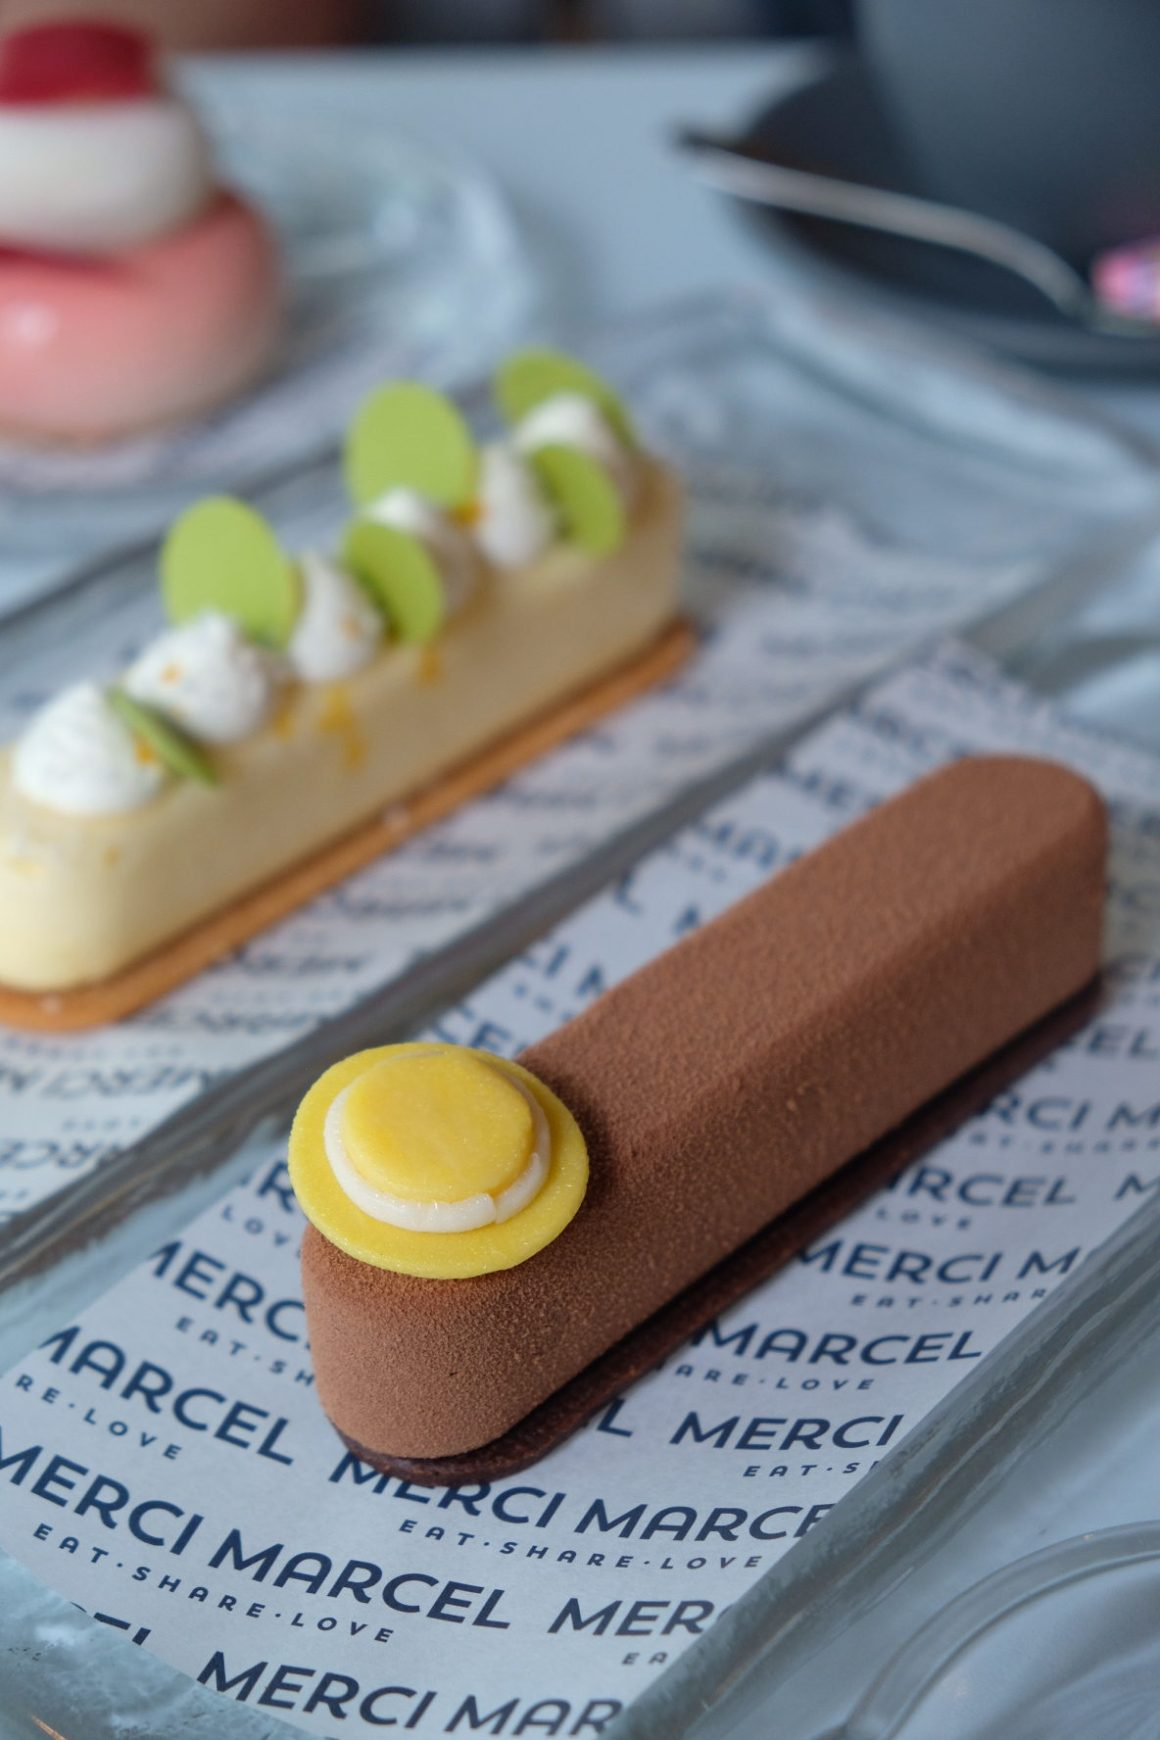 Merci Marcel x A Summer In Paris Offers 4 French Patisserie - Merci Marcel ($13.50)